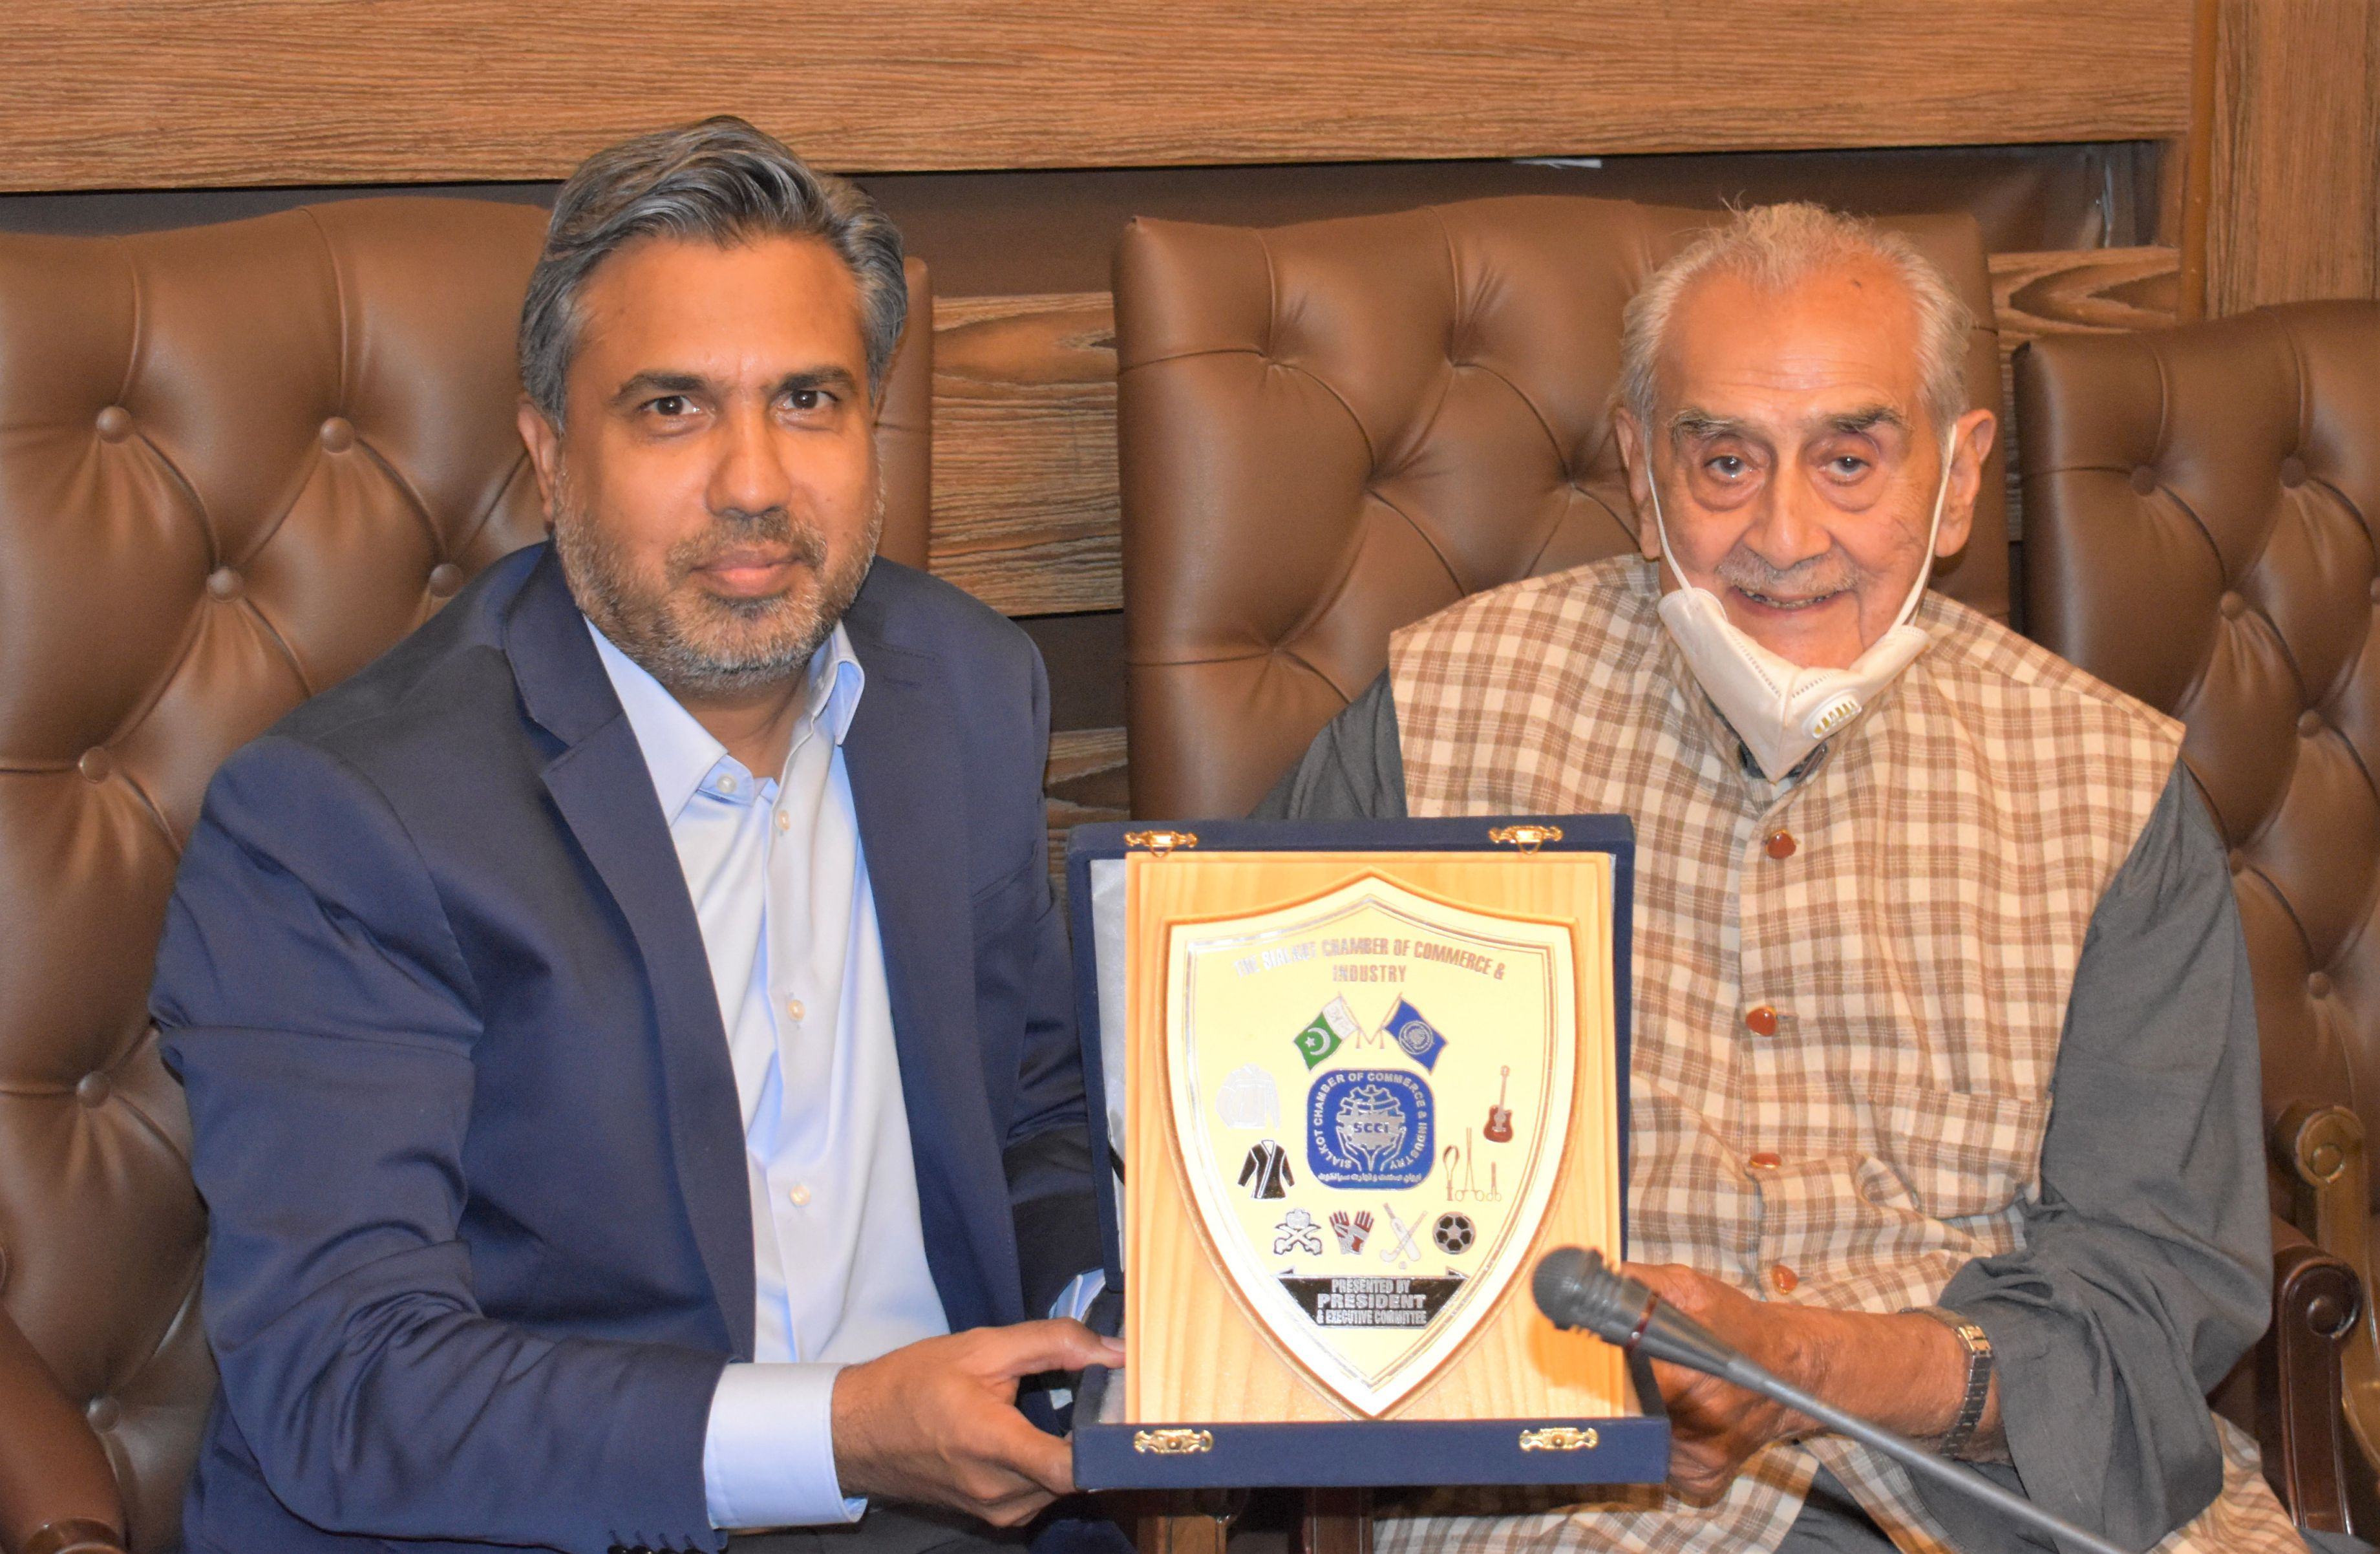 On September 14, 2021, A delegation of Lahore University of Management Sciences (LUMS) led by Syed Babar Ali, Founding Pro Chancellor LUMS visited Sialkot Chamber of Commerce & Industry to have a meeting with Mr. Qaisar Iqbal Baryar, President, Mr. Khuram Aslam, Senior Vice President, Mr. Ansar Aziz Puri, Vice President, SCCI and business Community of Sialkot.  Dr. Arshad Ahmad, Vice Chancellor LUMS and Ms. Nuzhat Kamran, Director Advancement briefed the participants about the vision and achievements of LUMS in providing the country with quality Human Resources. She also mentioned the objectives and aims of LUMS National Outreach Program. Dr. Alnoor Bhimani, Honorary Dean, Suleman Dawood School of Business briefed the audience about Scientific research and development projects accomplished by LUMS School of Science and Engineering.   The delegation included Mr. Shahid Hussain, Rector, Dr. Sabieh Anwar, Dean of School of Science & Engineering and Ms. Nuzhat Kamran, Director Advancement.